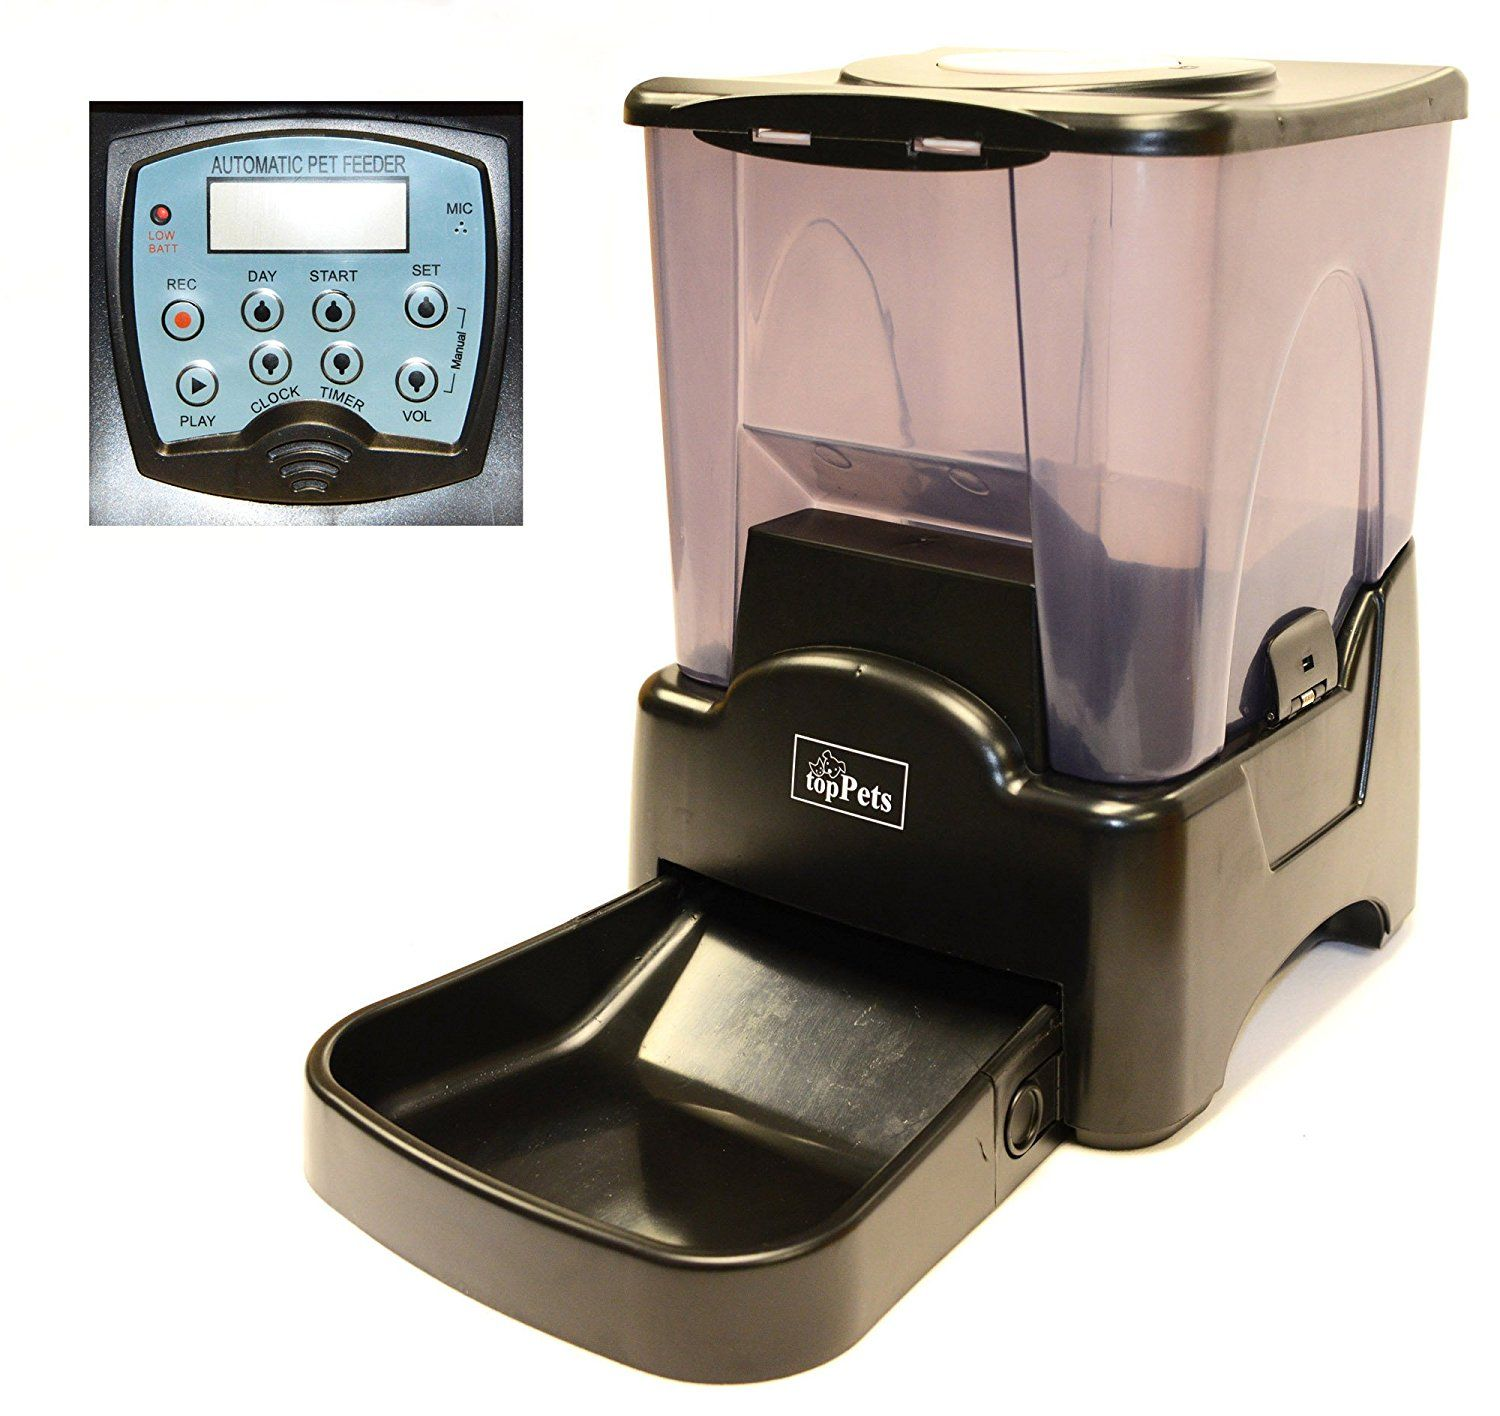 Toppets Large Automatic Pet Feeder Electronic Programmable Portion Control Dog Cat Feeder W Lcd Display Learn More By Vis Cat Feeder Pet Feeder Dog Feeder